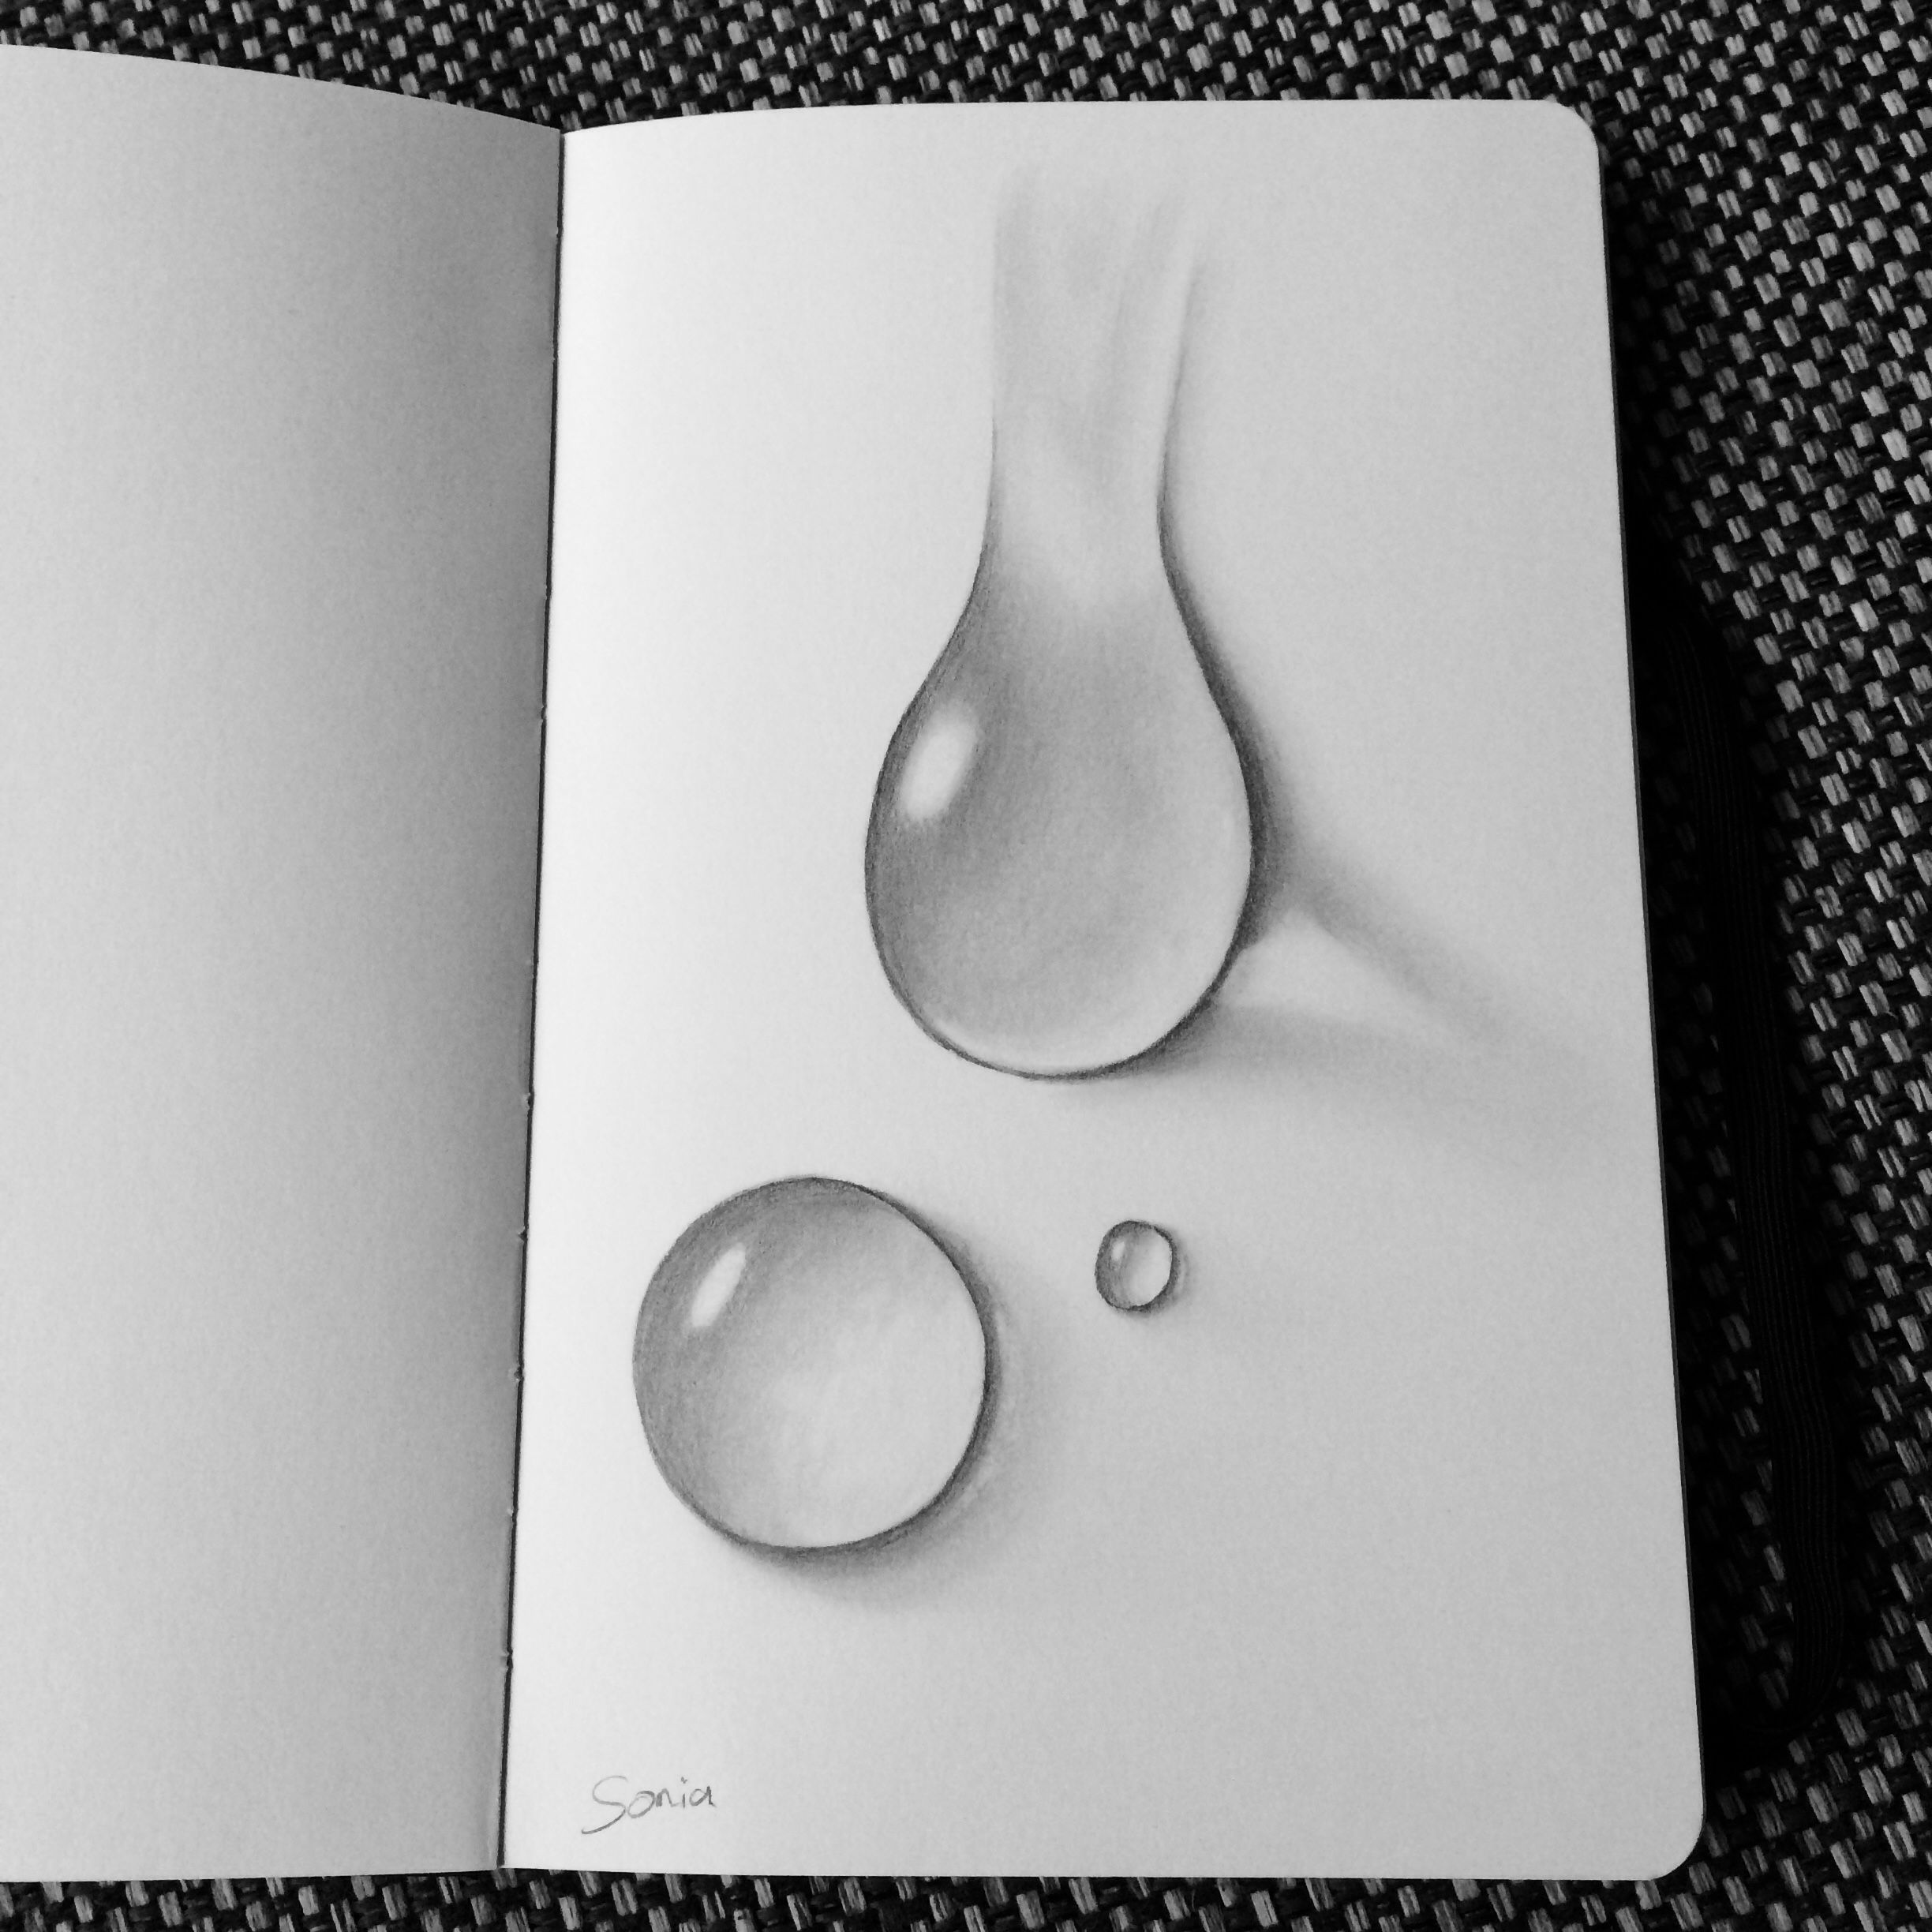 Pencil drawing water droplets by sonia